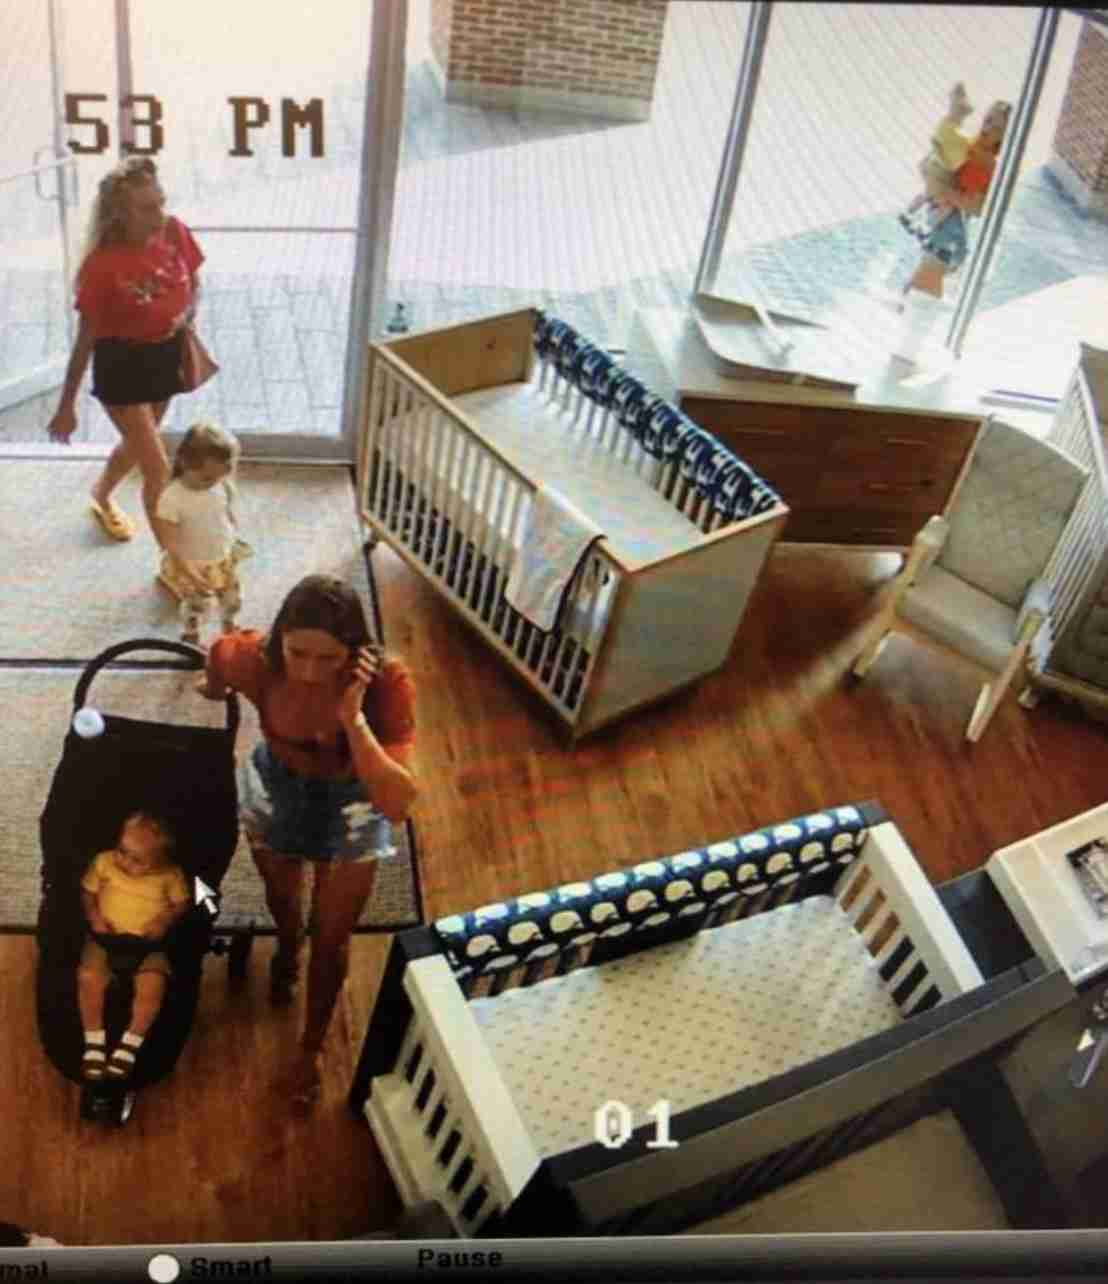 bambi baby middletown stroller thief august 2019